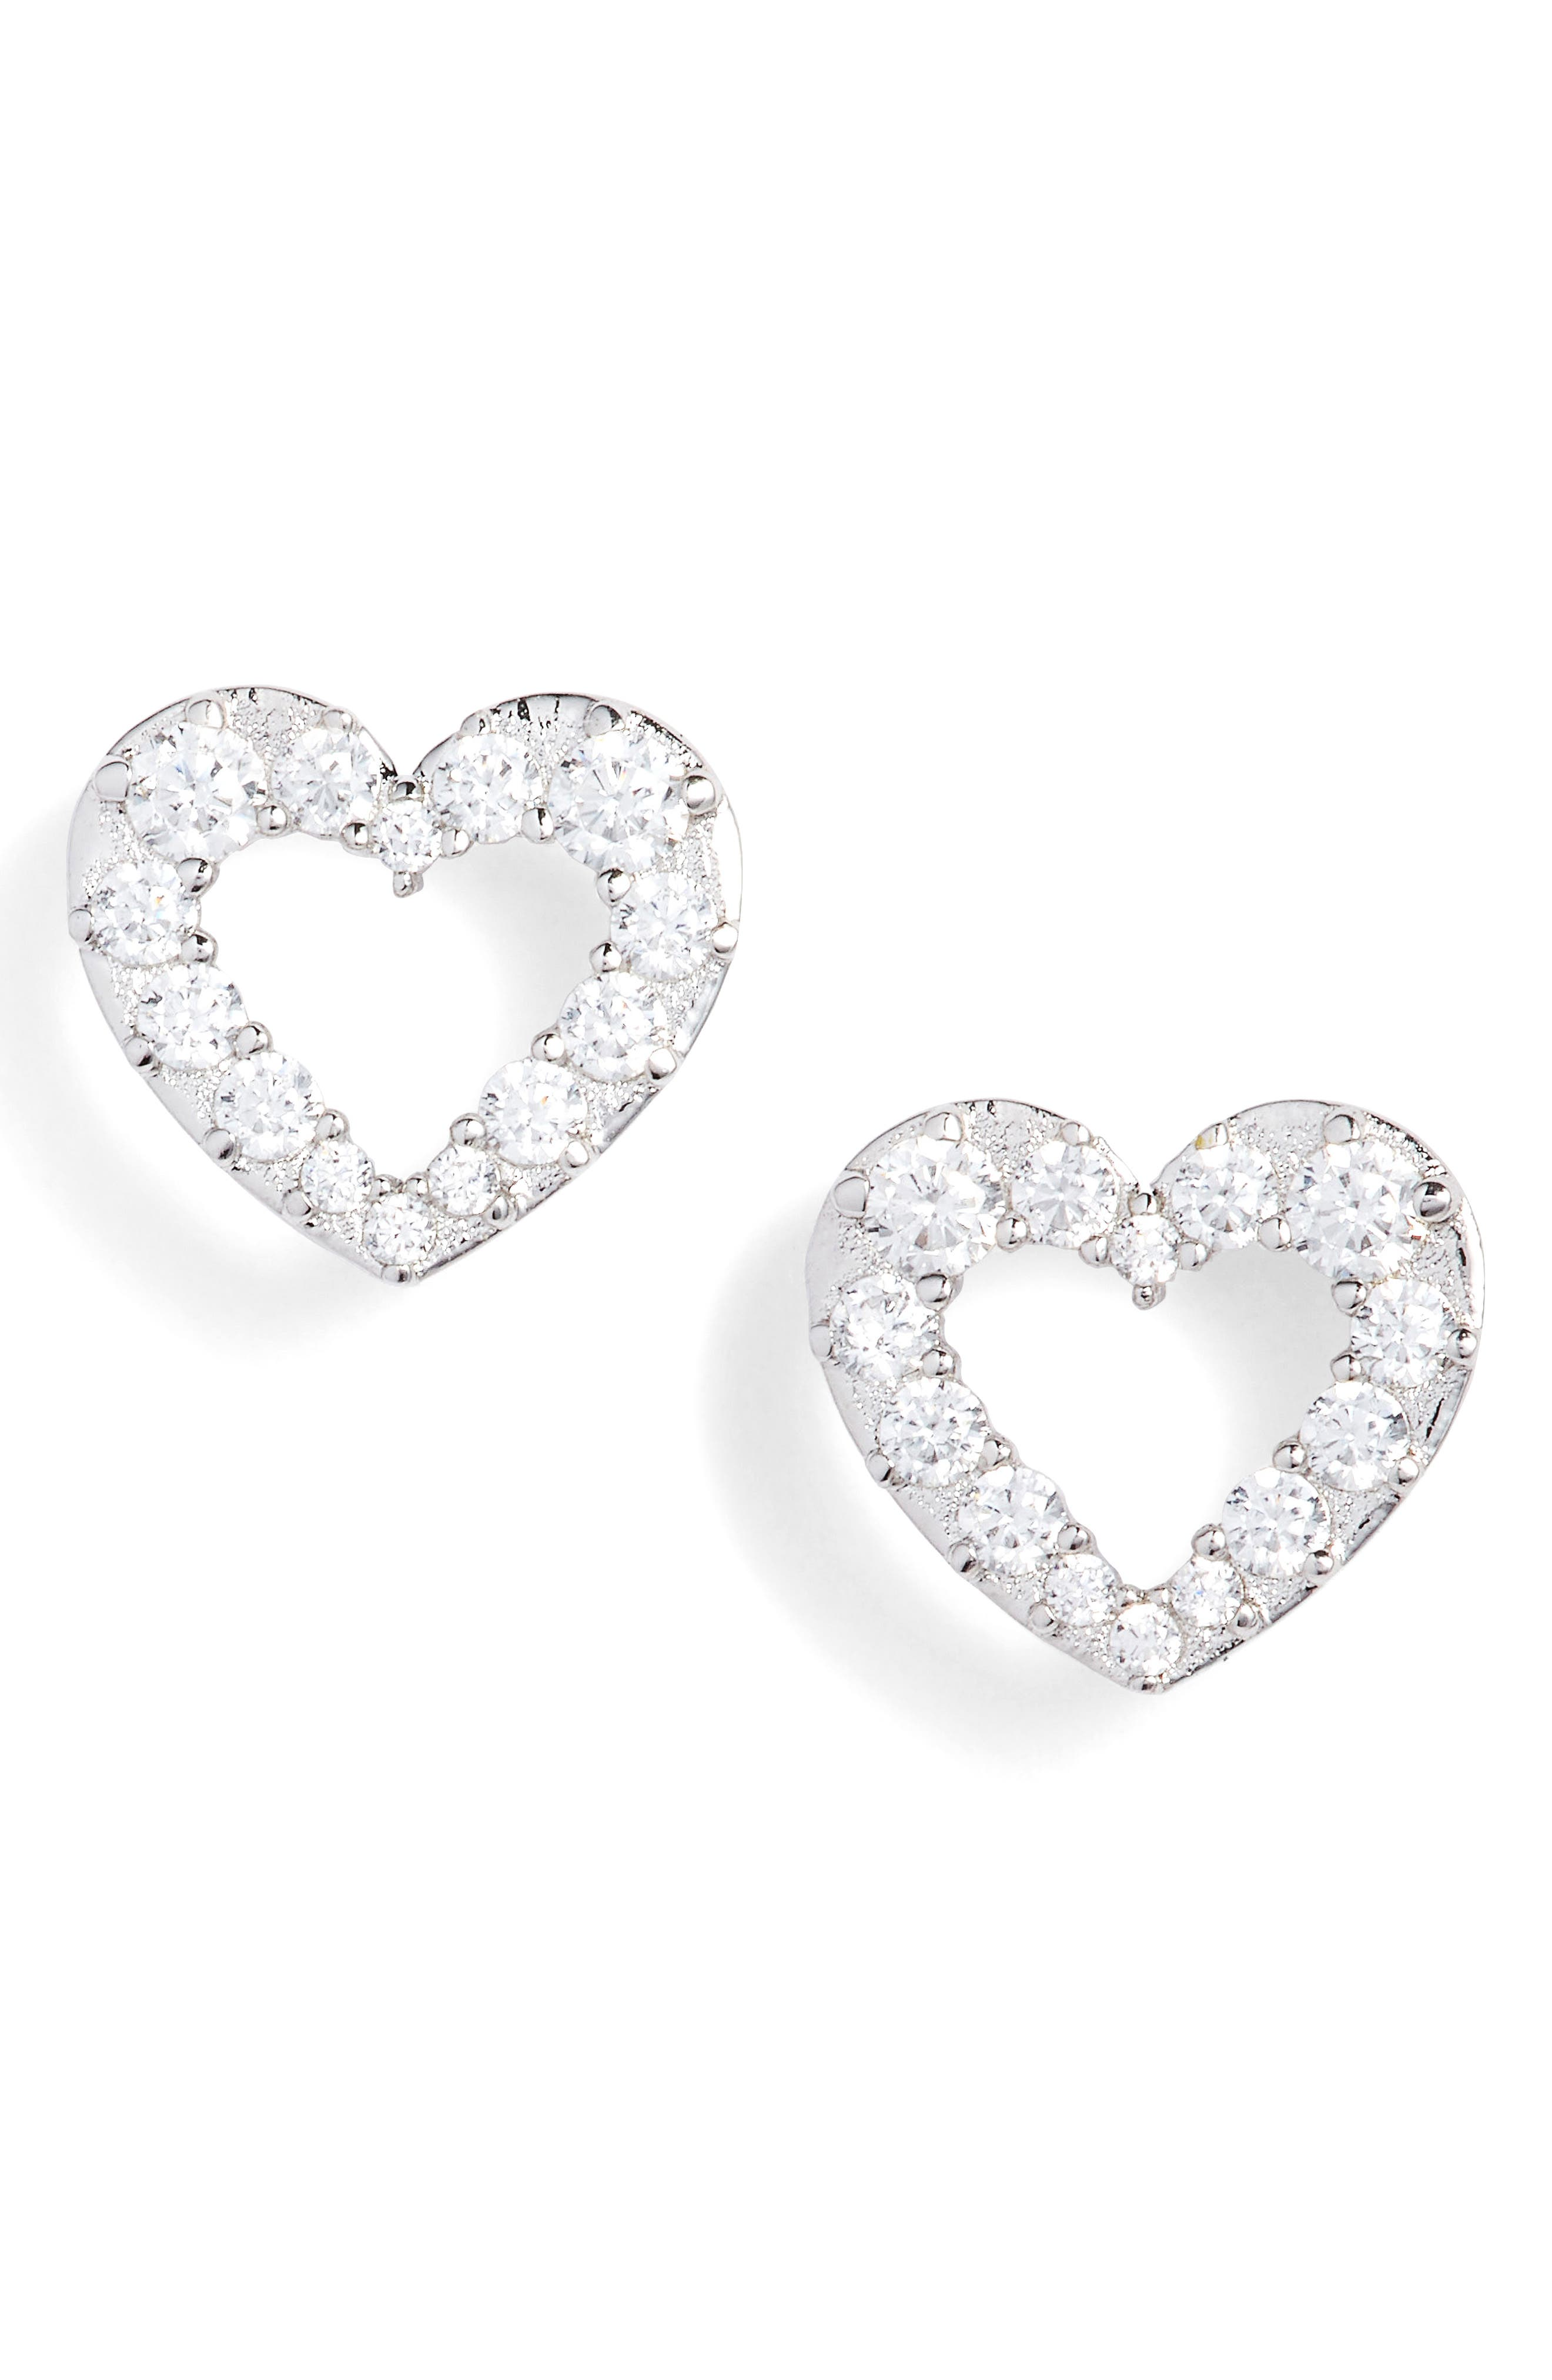 Reminisce Cubic Zirconia Heart Stud Earrings,                         Main,                         color,